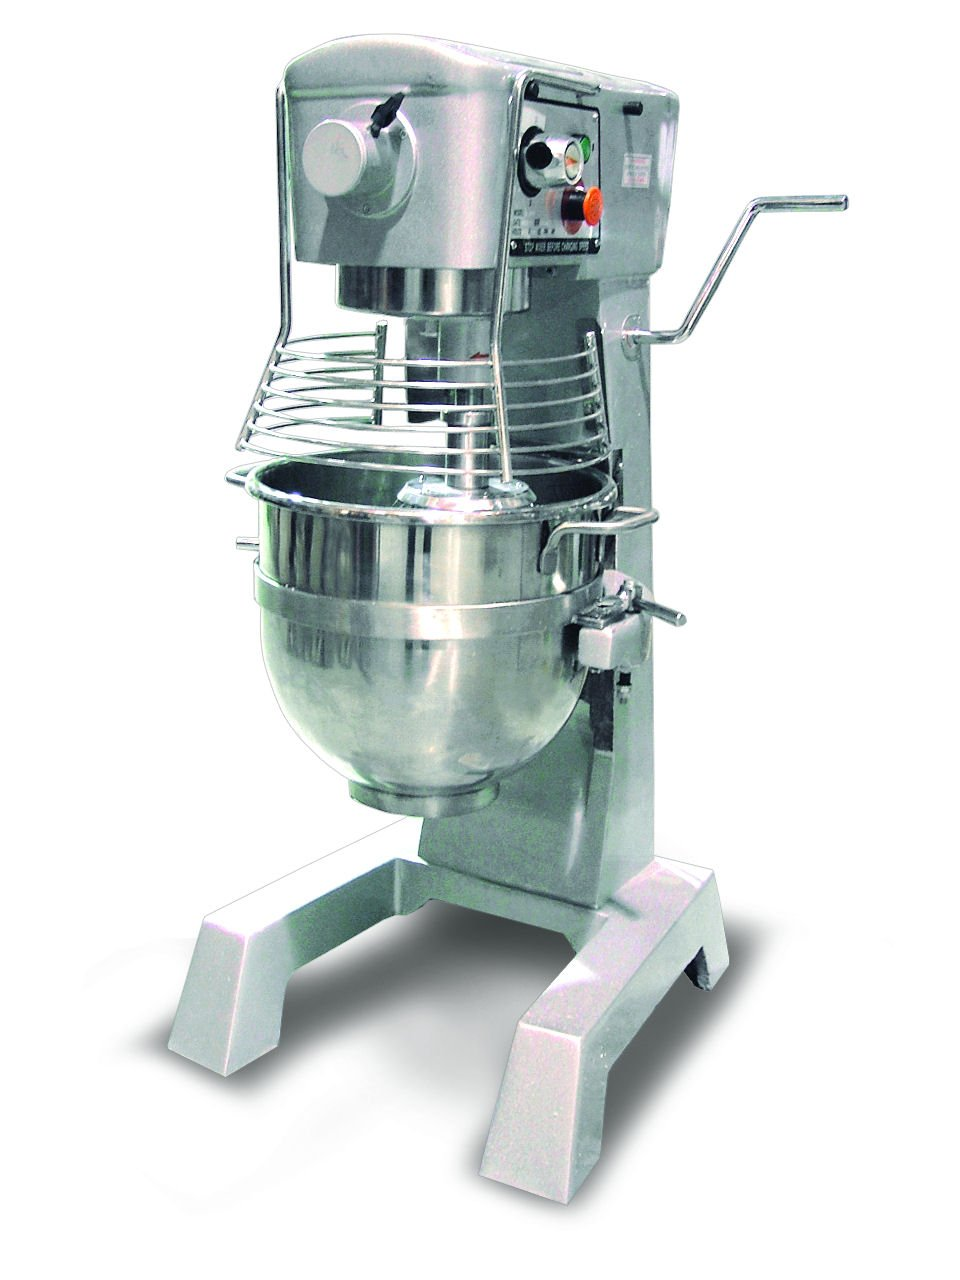 Fma Omcan Commercial 30 QT 2 HP Food Pizza Dough Bakery Mixer MX CN 0030 G  20442: Amazon.com: Industrial U0026 Scientific